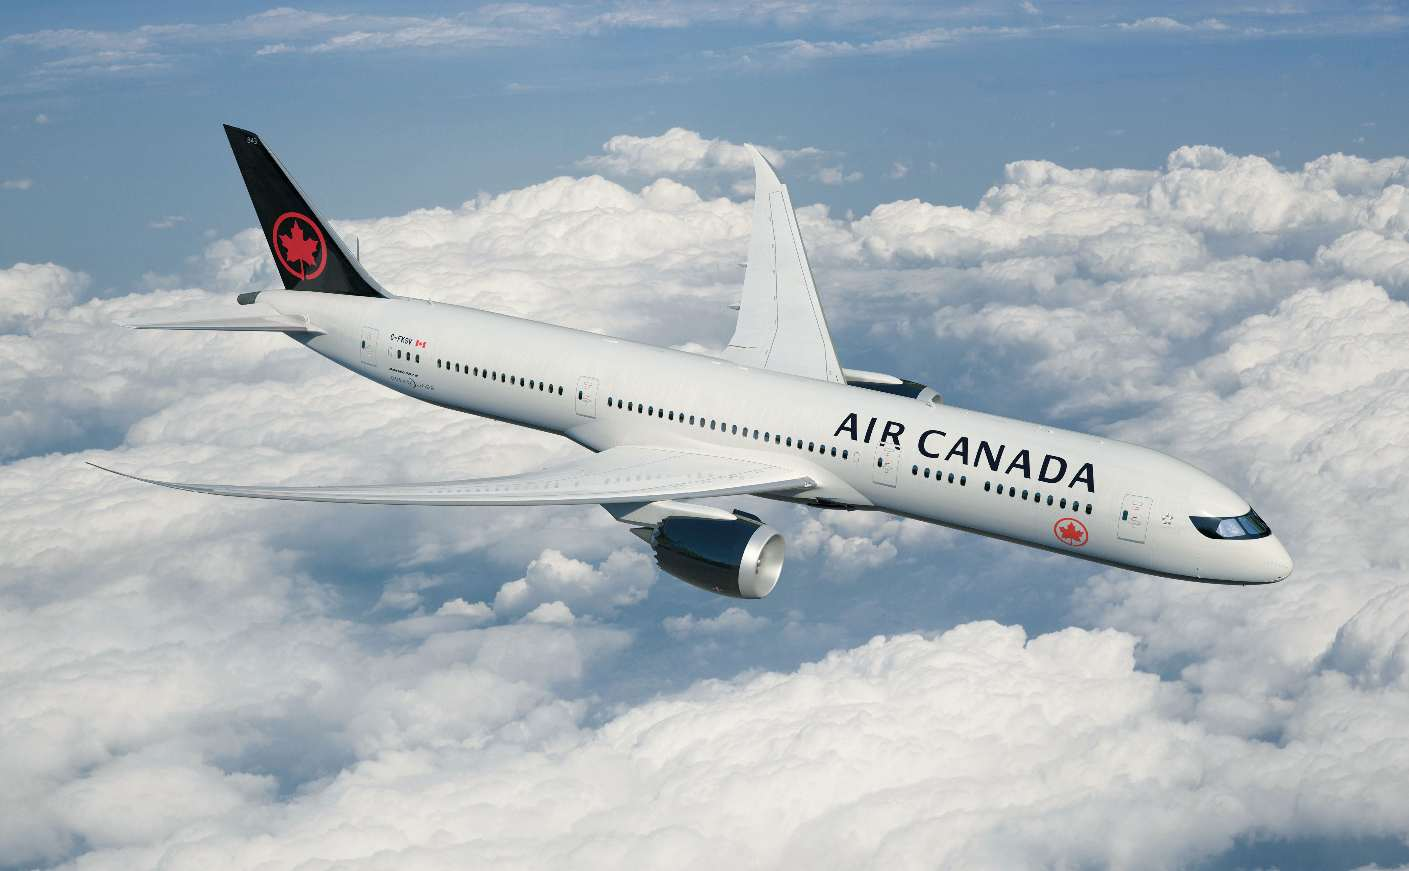 vol retardé Air Canada